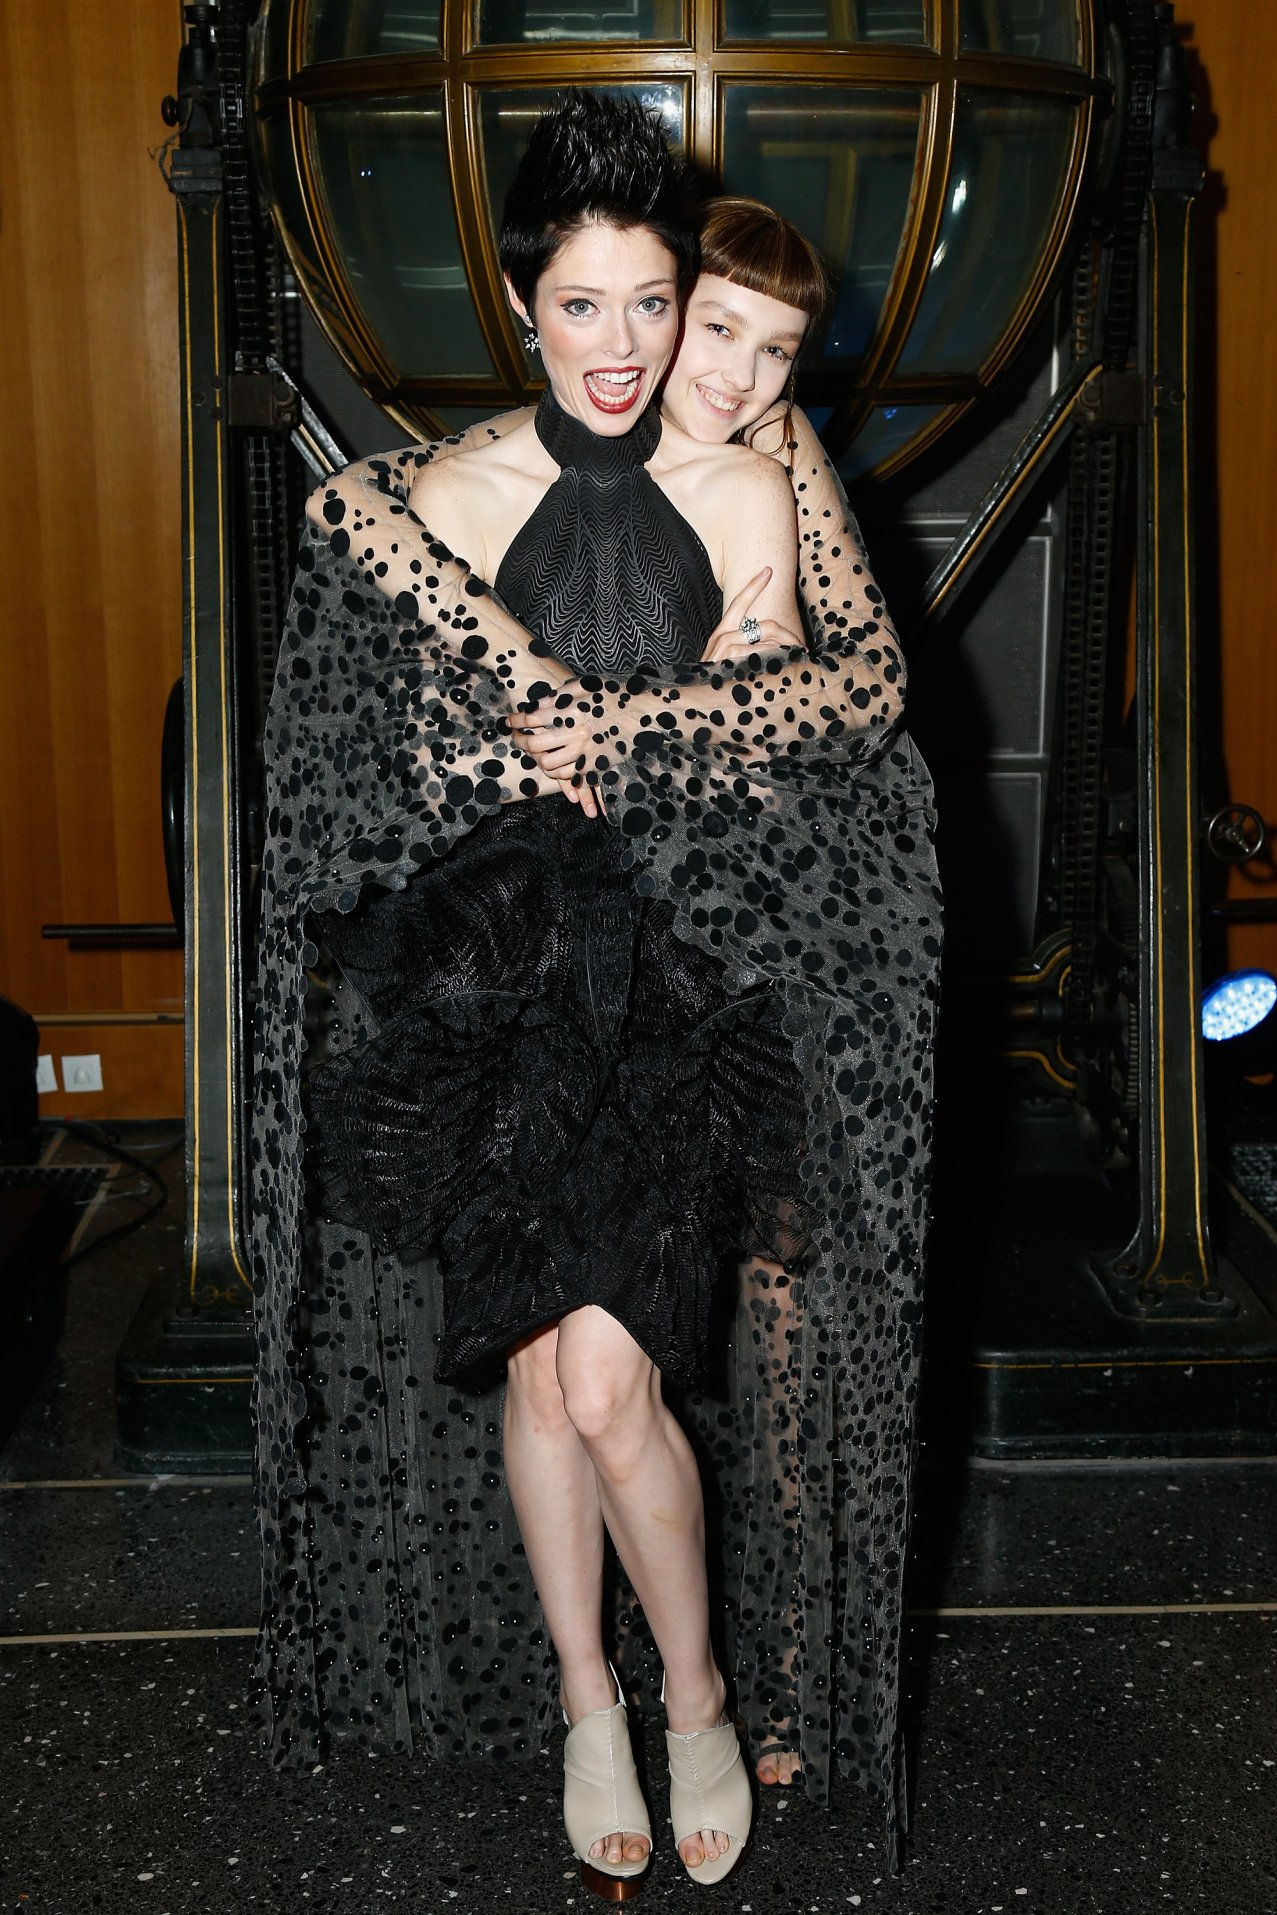 Coco-Rocha-and-modelJPG